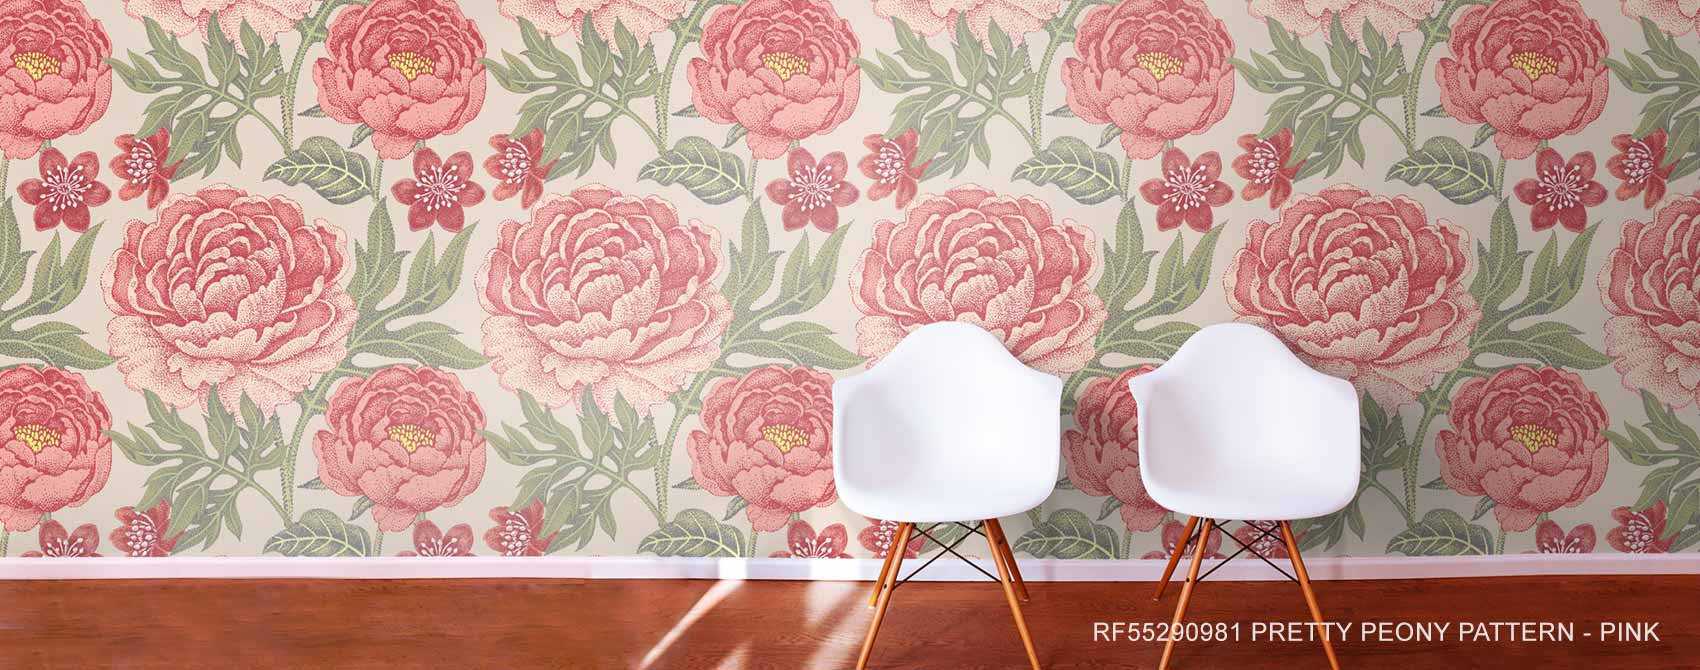 Pretty Peony Pattern - Pink wallpaper mural